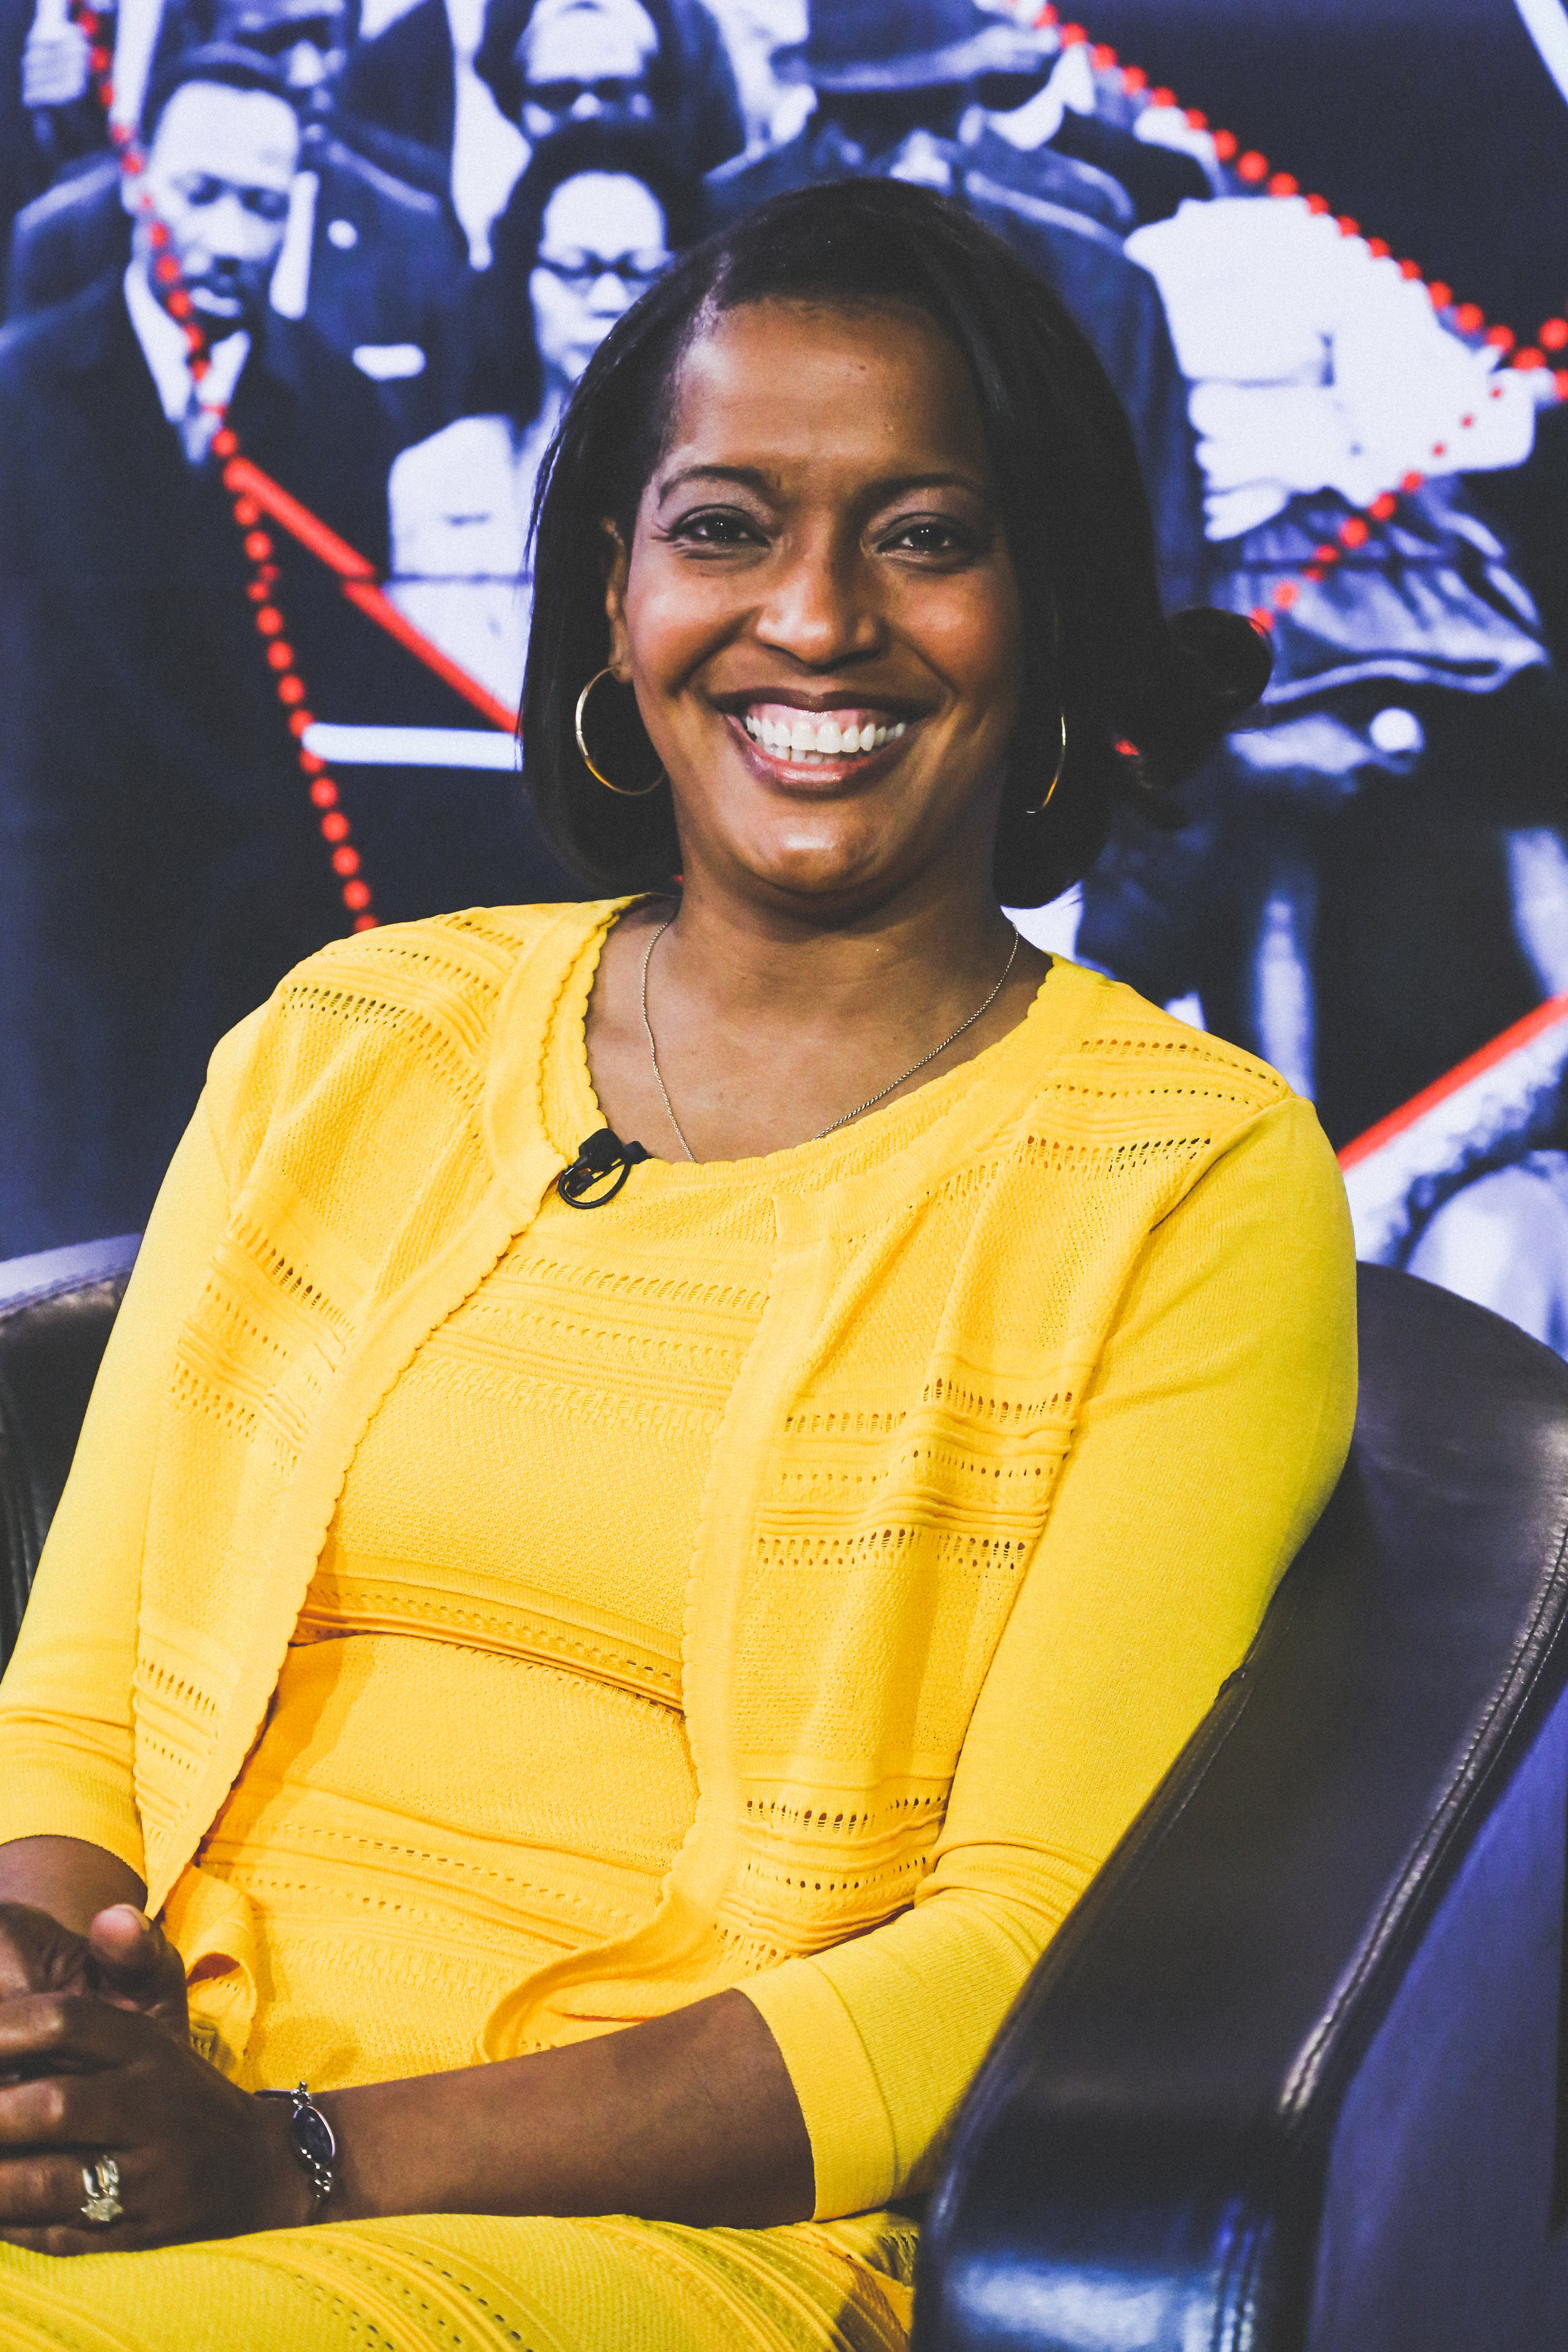 JAHANA HAYES  Connecticut's 2016 Teacher of the Year   https://youtu.be/PiuZBQQr3tw